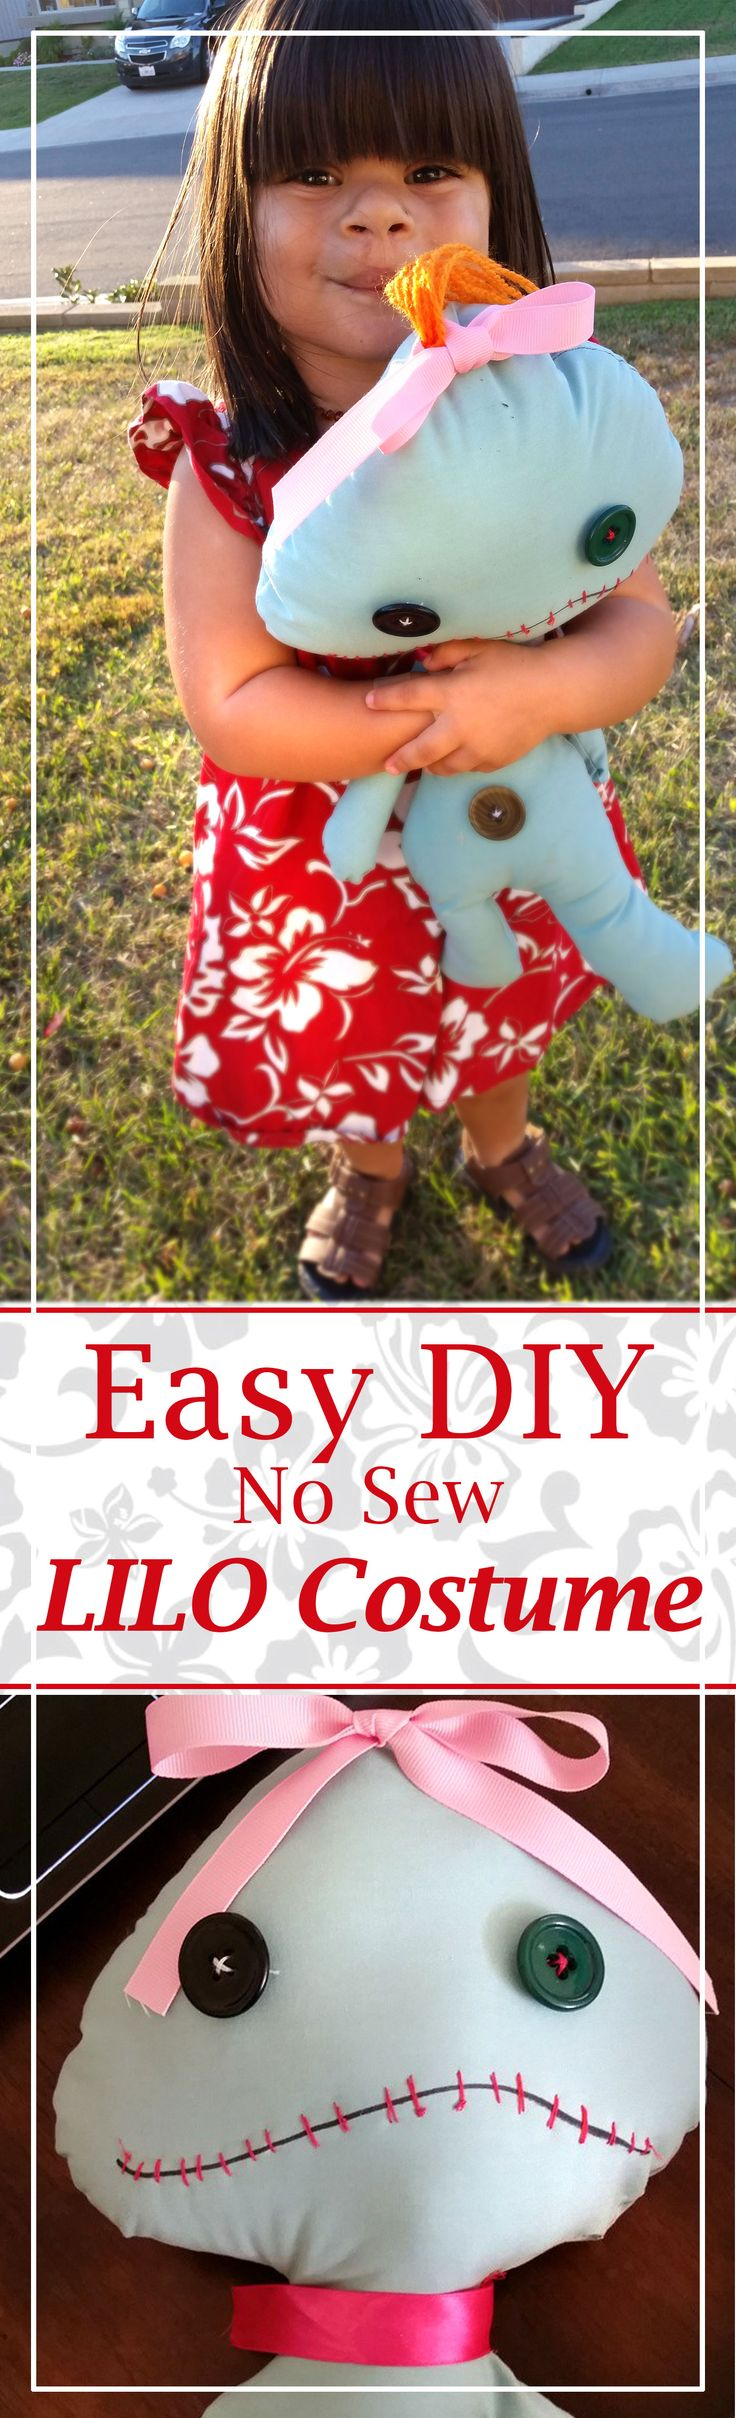 DIY Lilo Costume. Fun for any Lilo and Stitch fan - great for Mickey's Halloween Party, dress up, trick or treat, costume parties, and more! This is NO SEW and can be worn as regular clothing later!